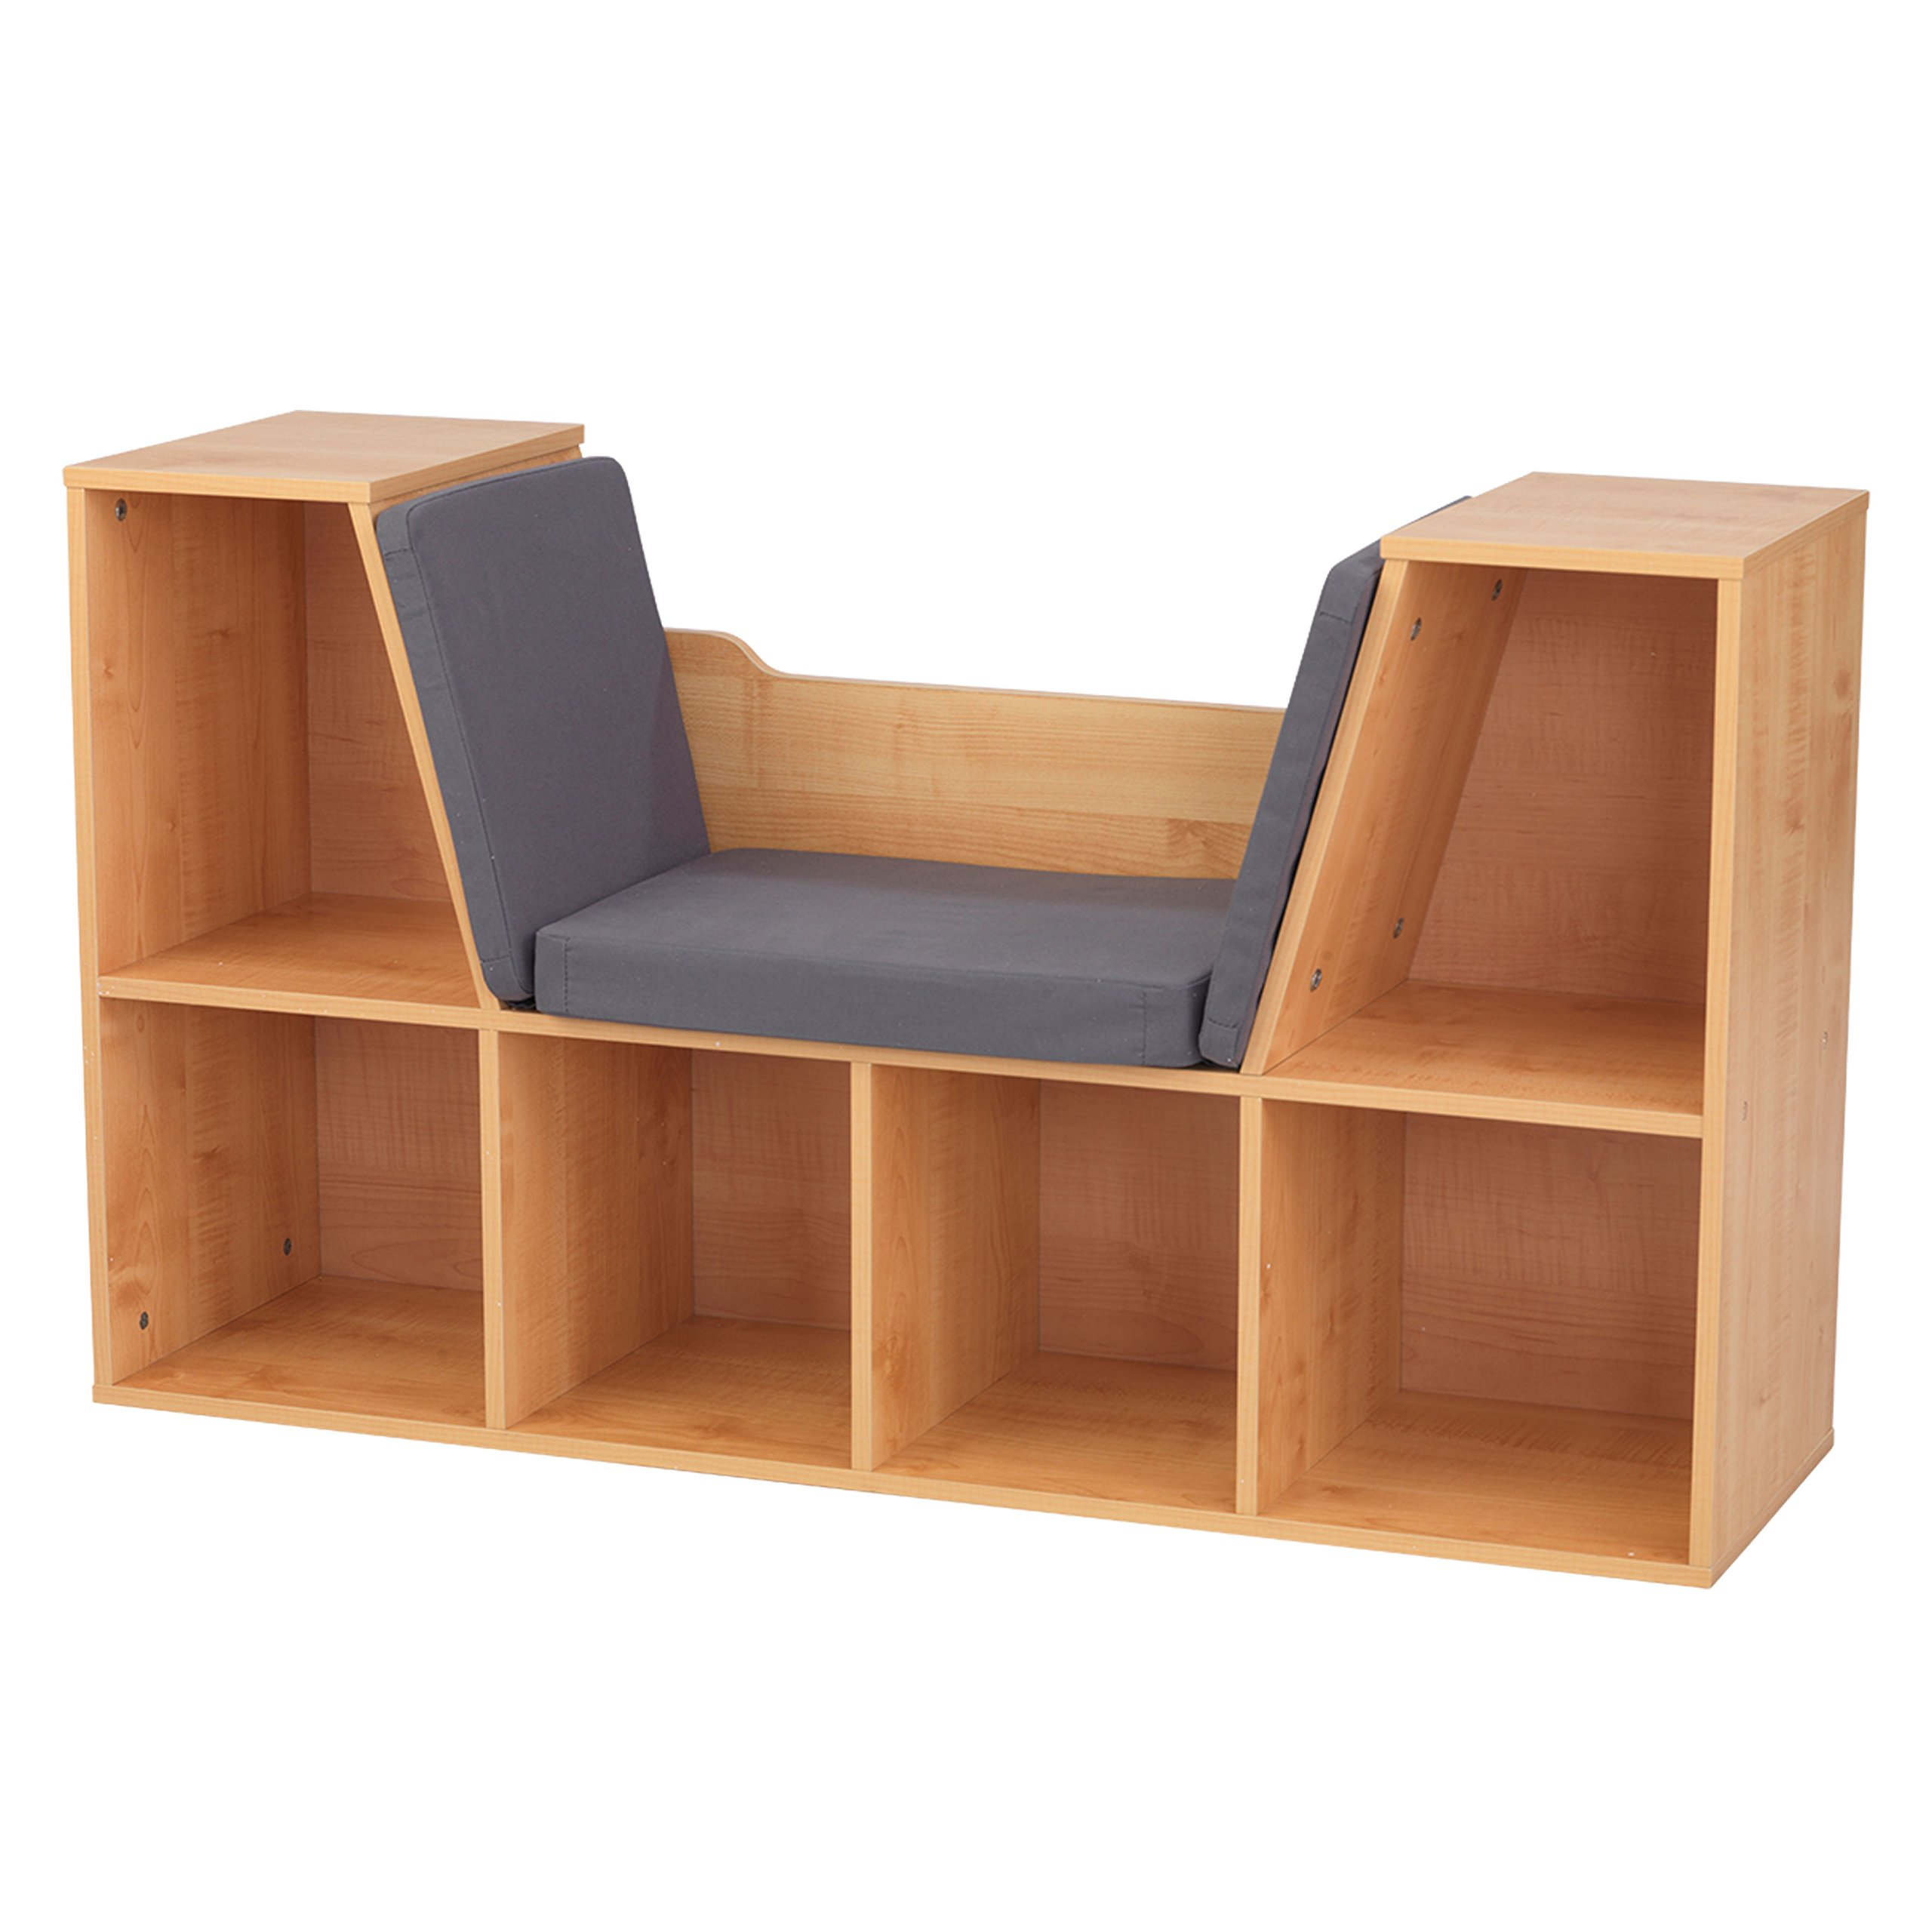 KidKraft Bookcase with Reading Nook Toy, Natural by KidKraft